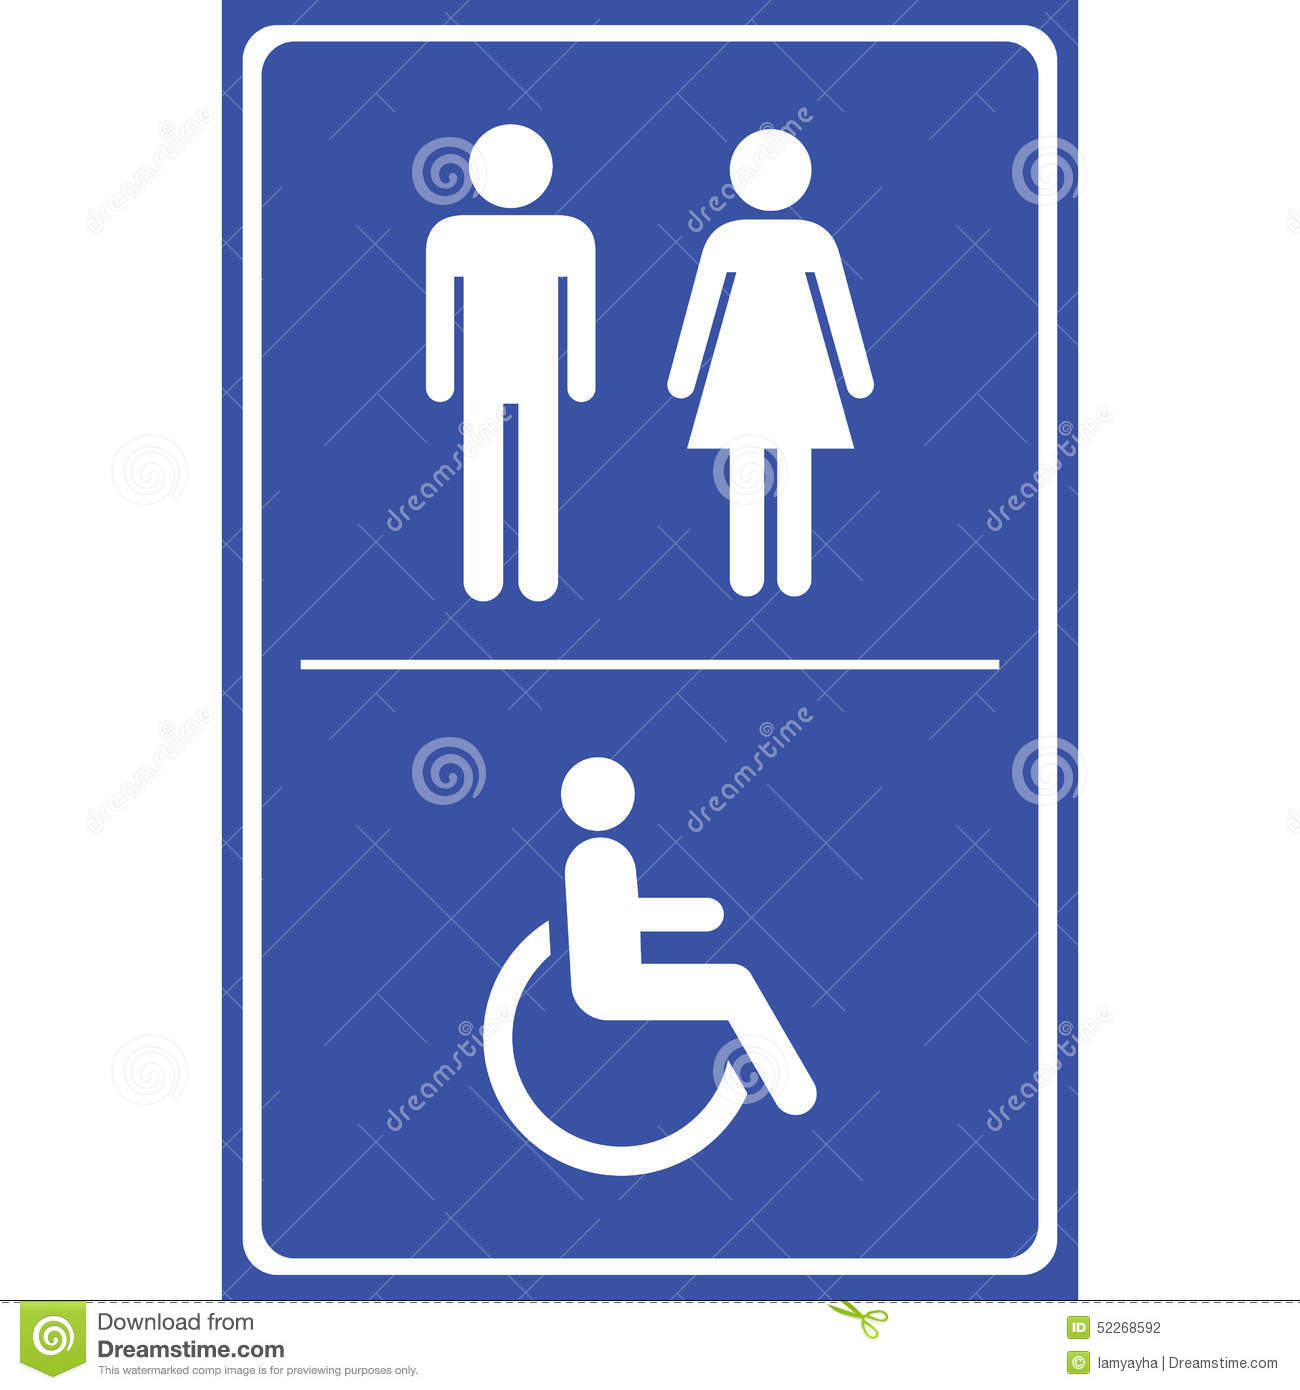 toilet sign with blue background man sign women sign handicap sign eps10